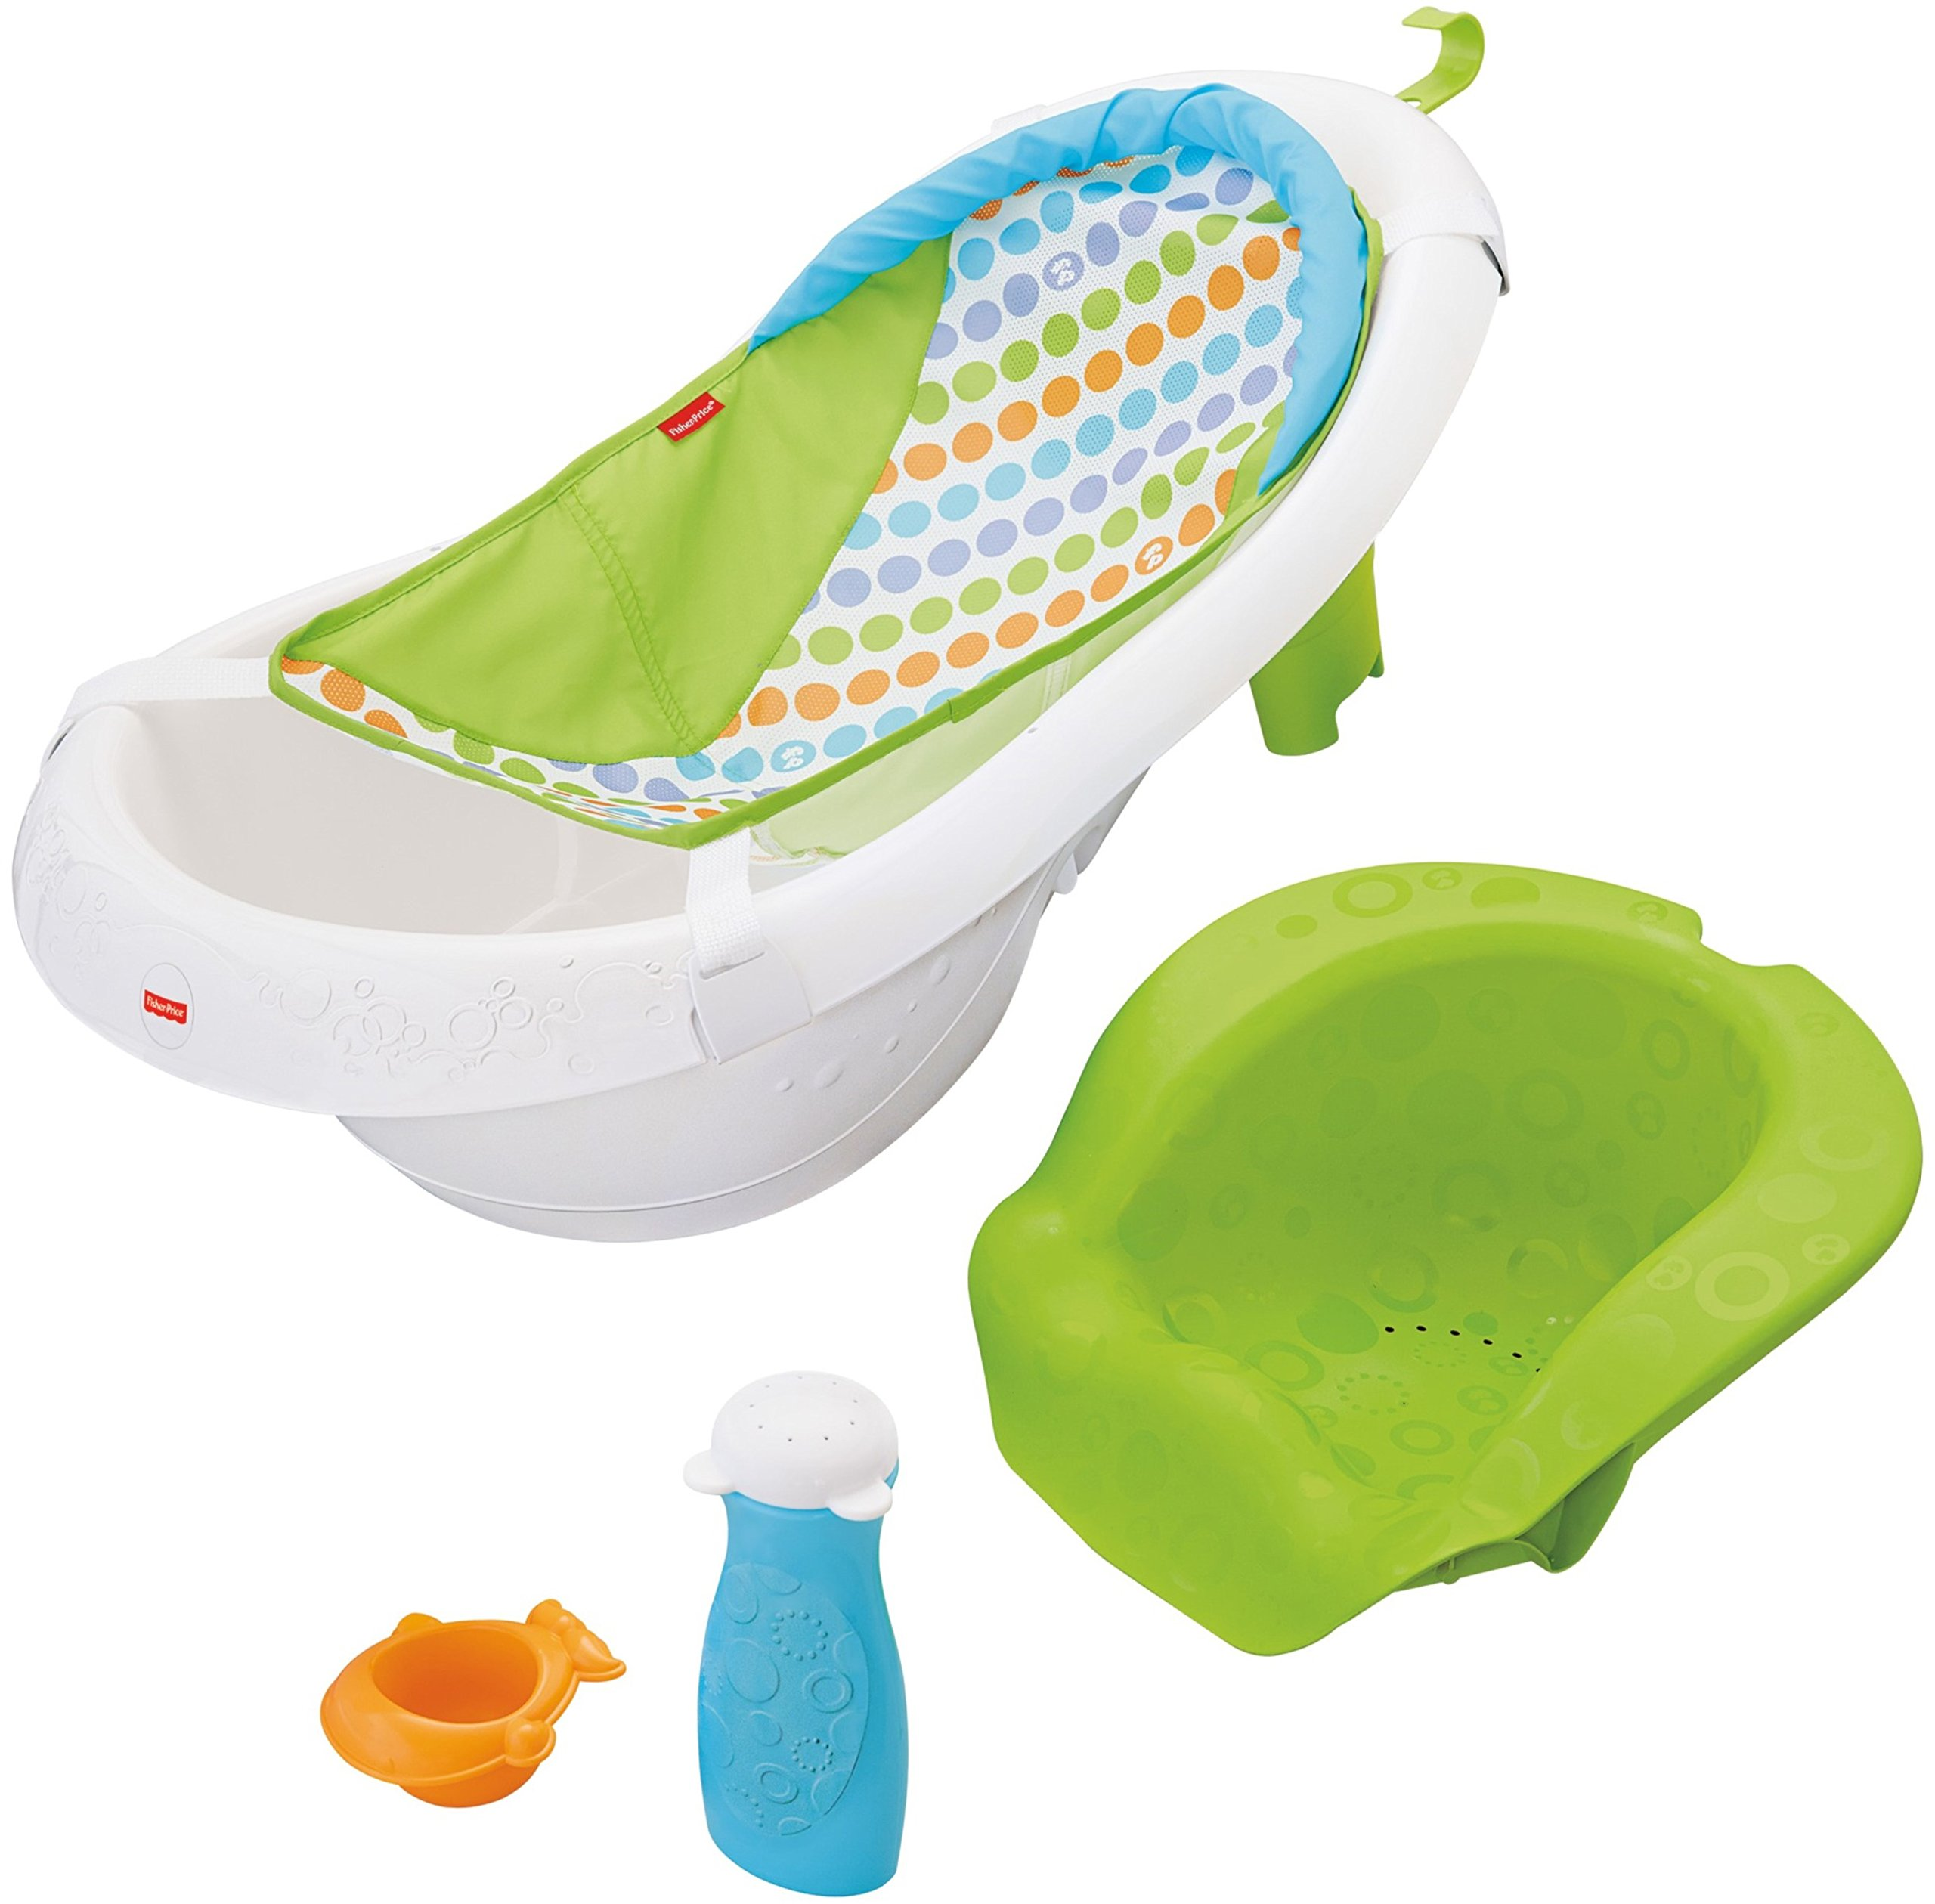 Fisher-Price 4-in-1 Sling N Seat Tub, Multi color